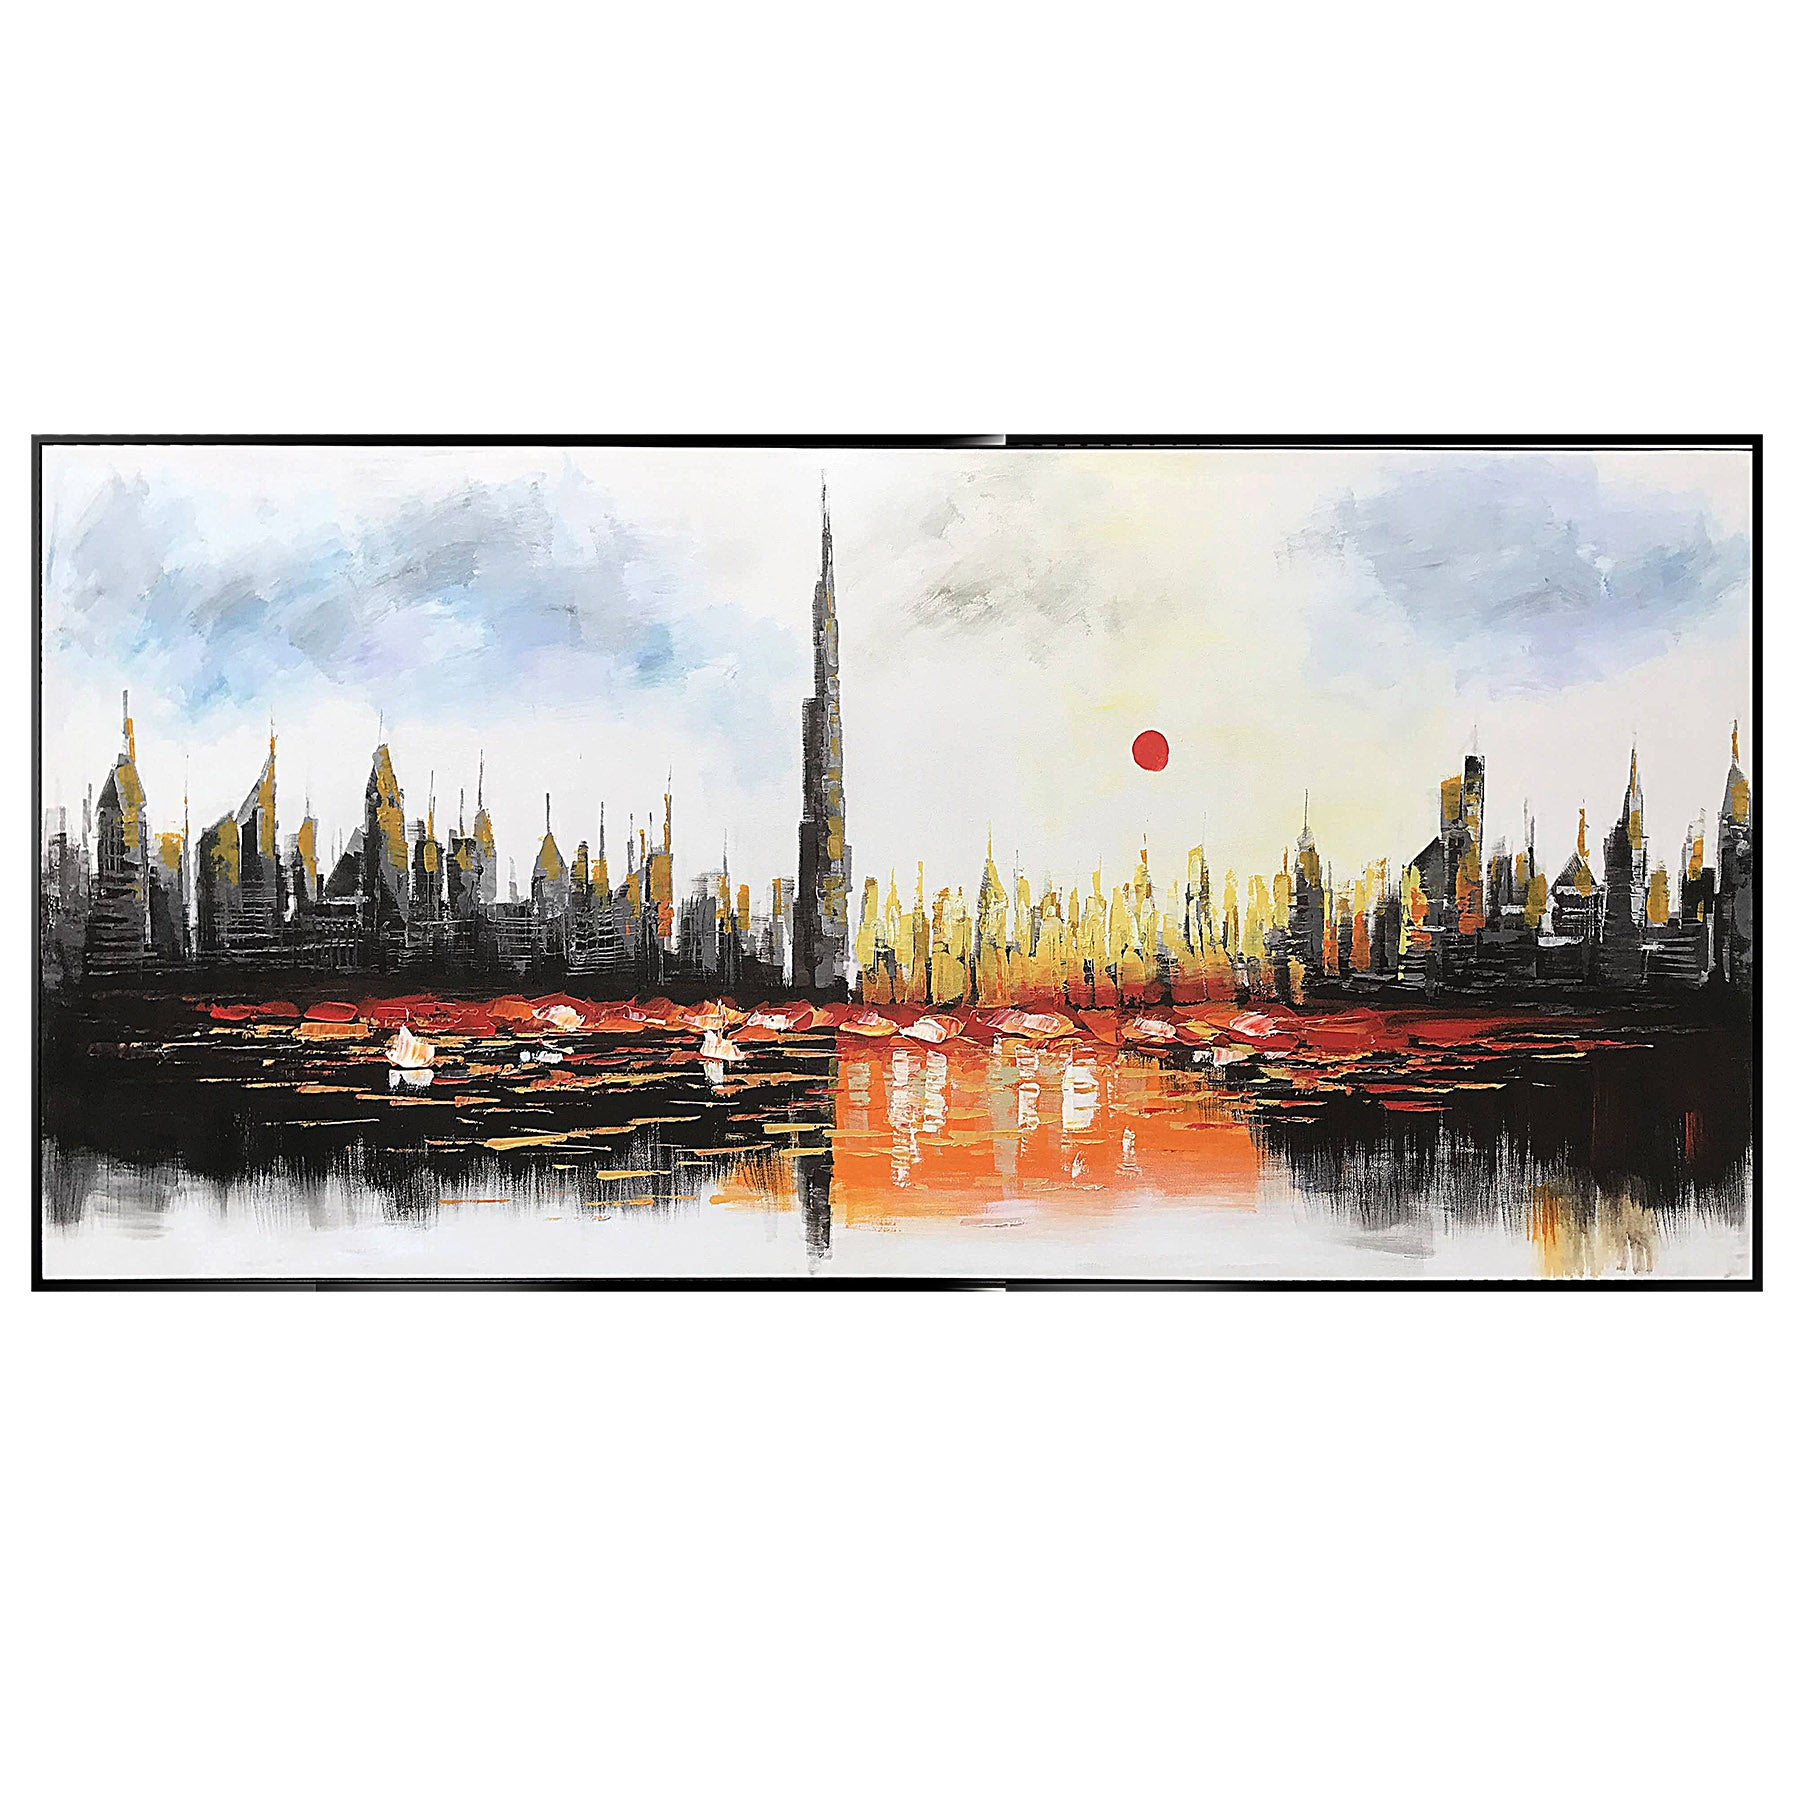 Handpainted Art Painting with Frame 200x90cm PNB115 SOAP0067